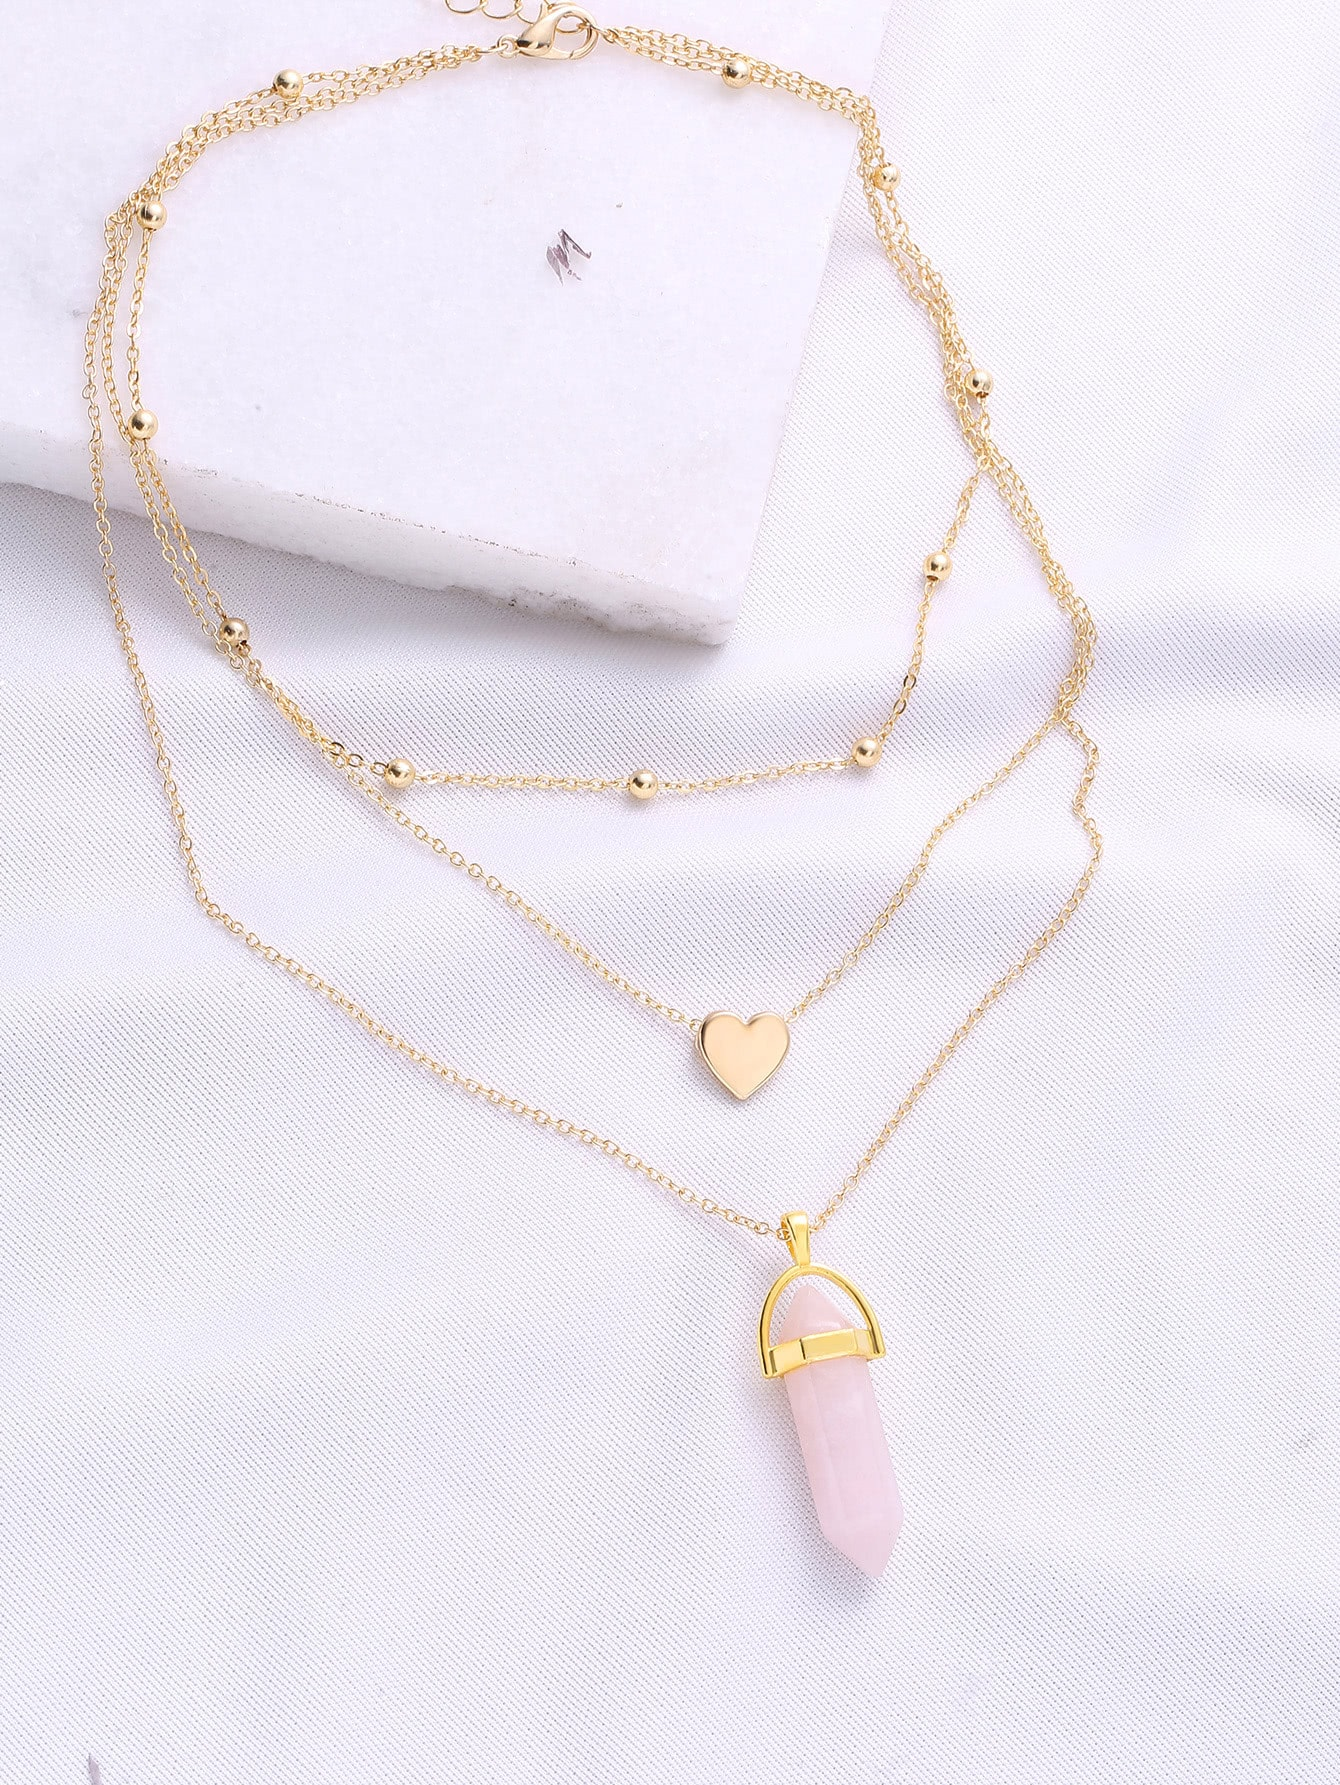 Gold Heart Pendant Layered Chain Necklace rhinestone heart chain pendant necklace